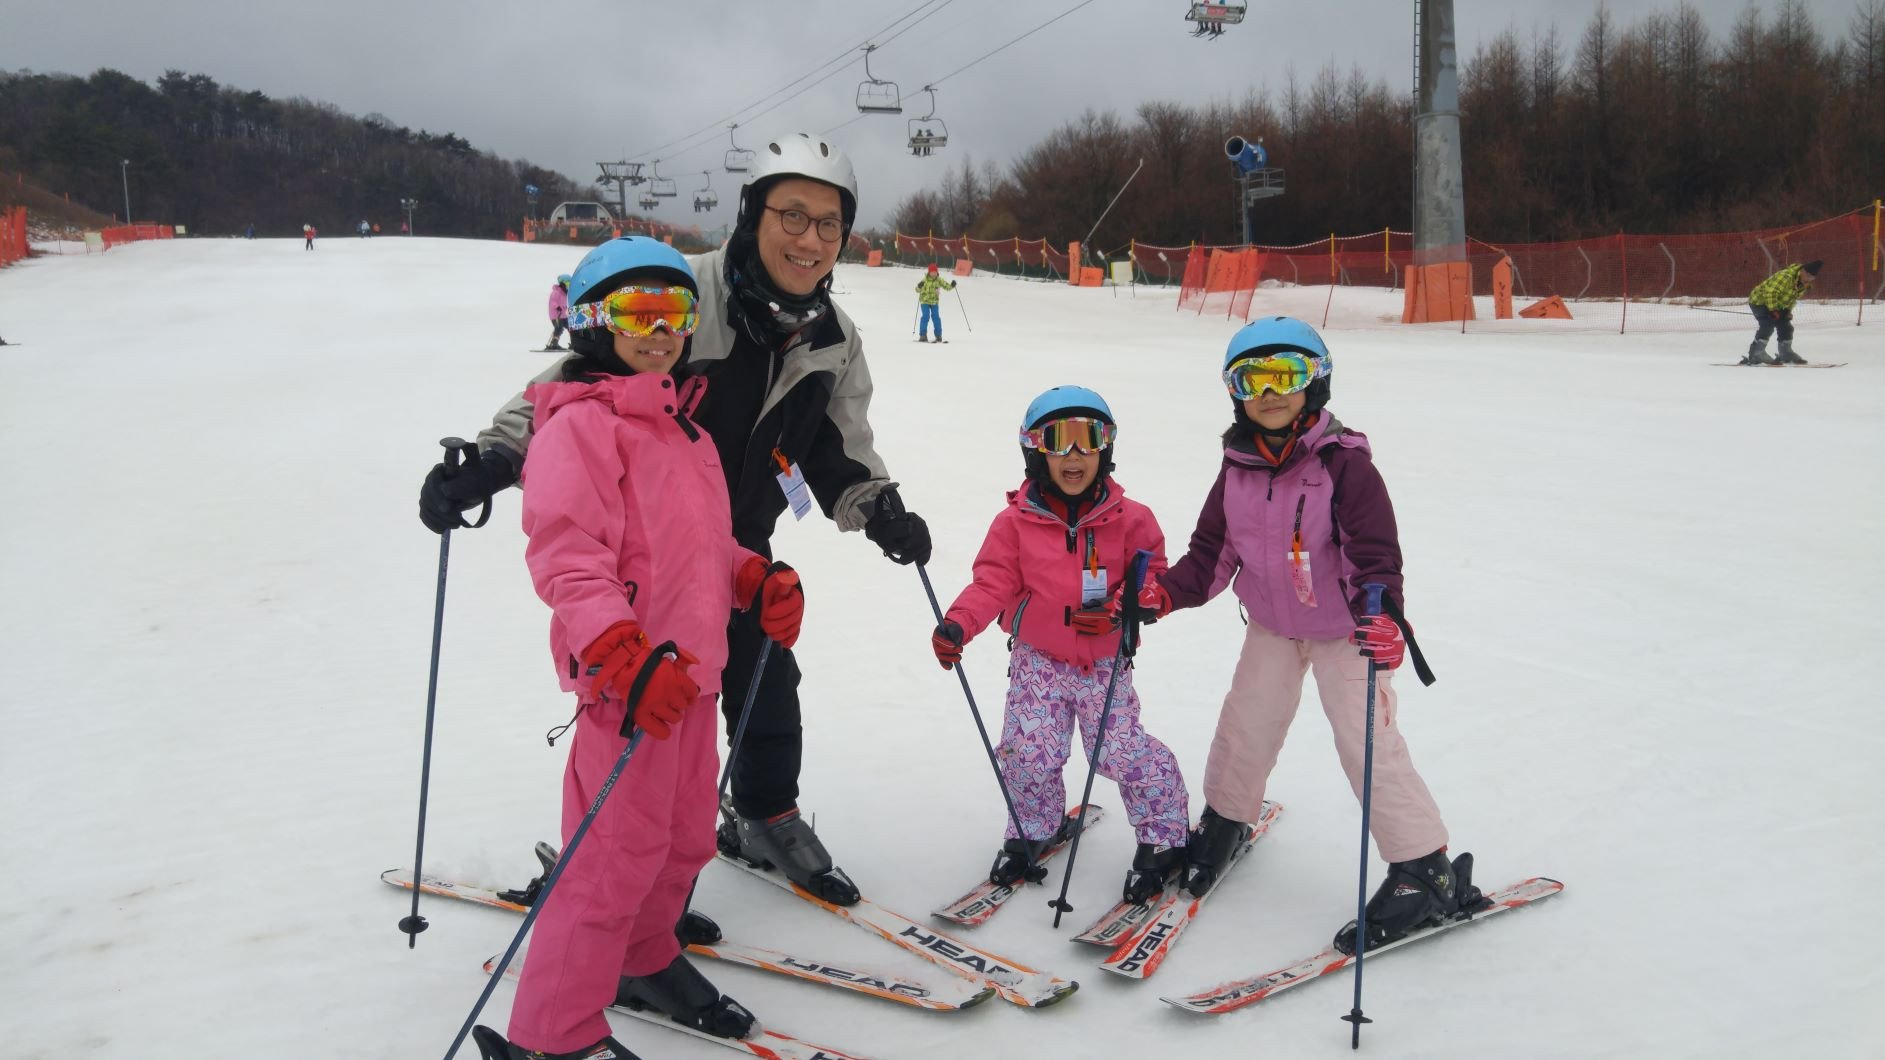 Private Ski Lesson at Alpensia Ski Resort Korea